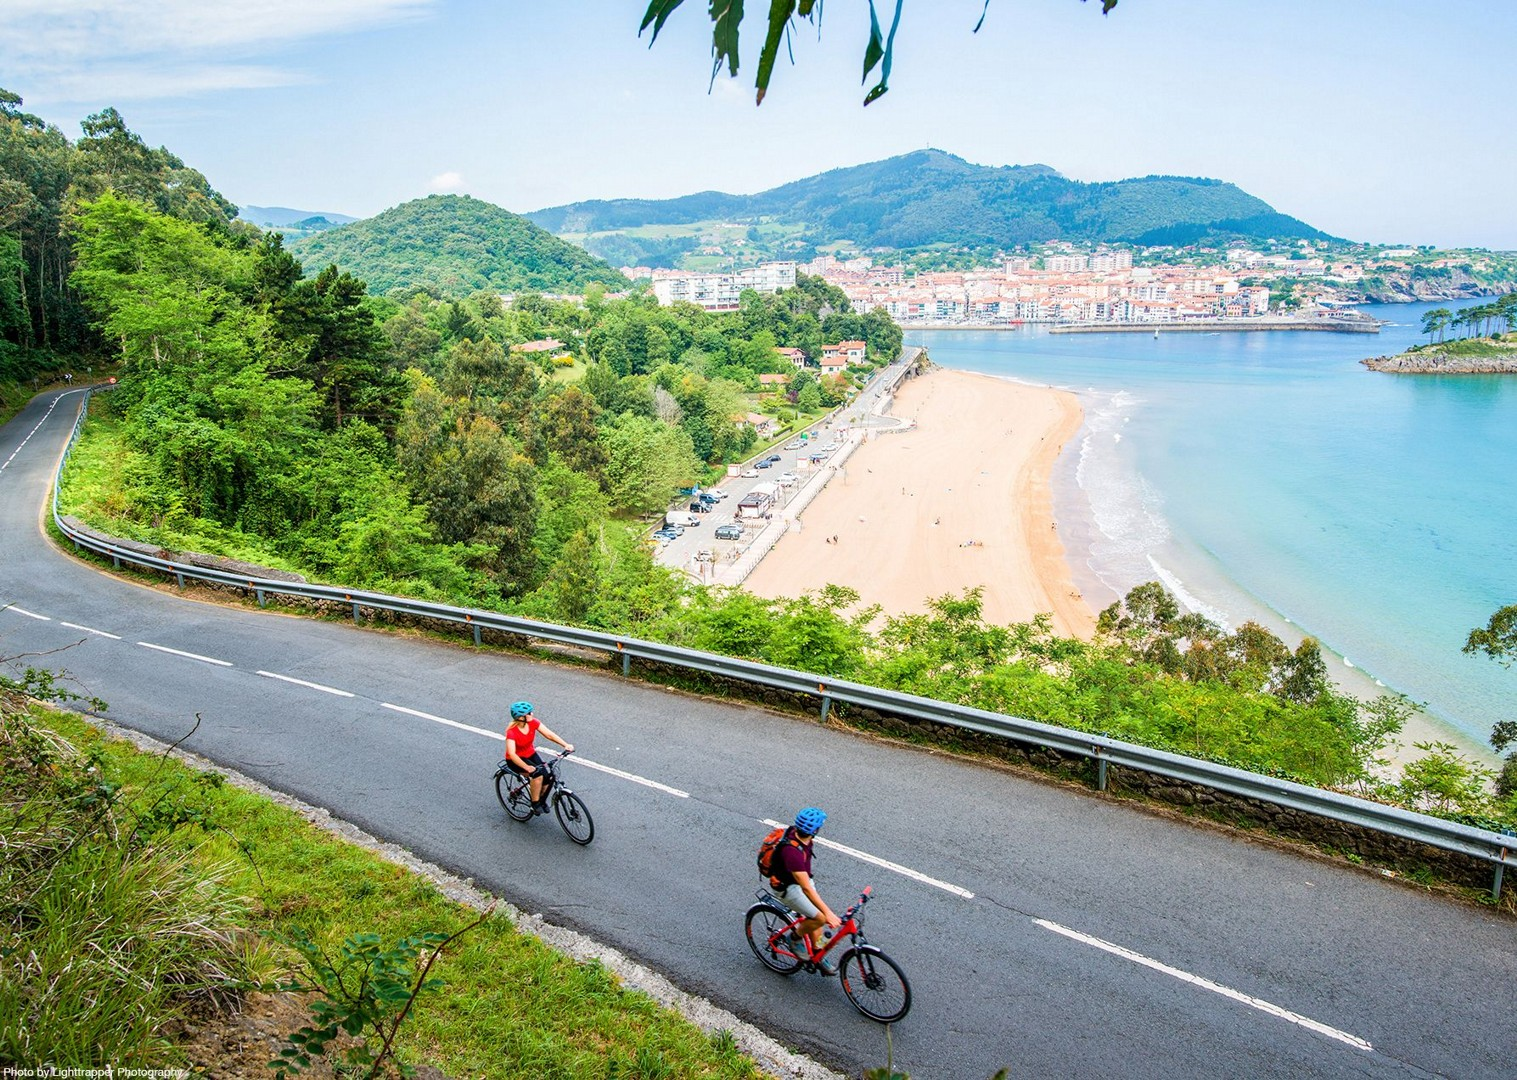 bilbao-to-san-sebastian-spain-self-guided-leisure-cycling-holiday.jpg - NEW! Spain - Bilbao to San Sebastian - Leisure Cycling